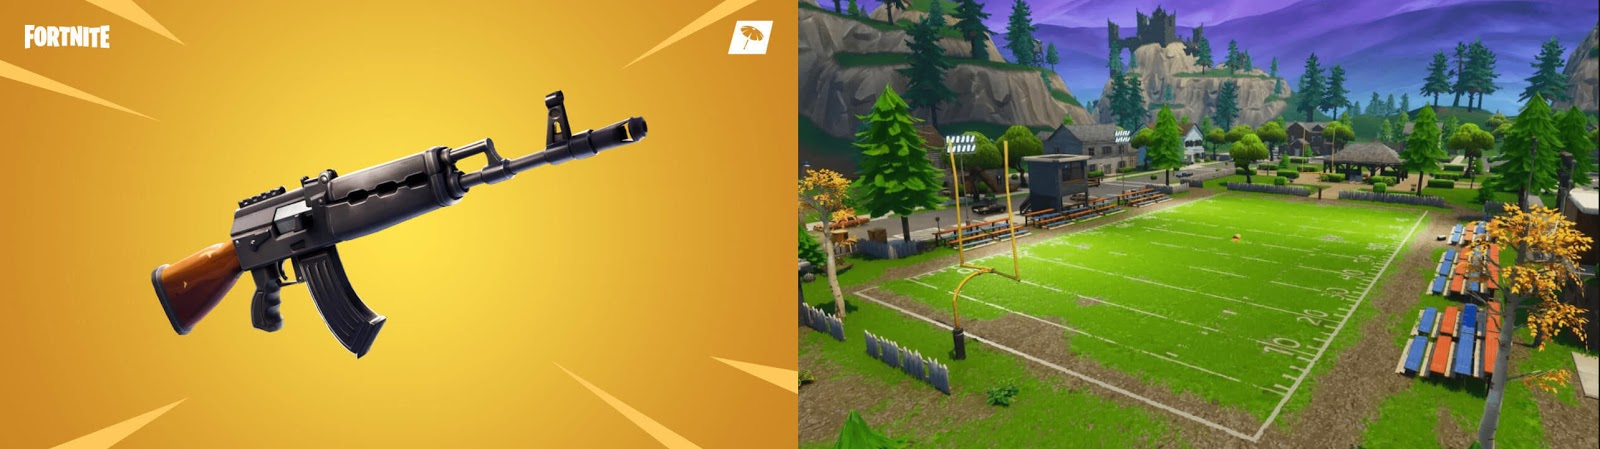 'FORTNITE' UPDATE 6.22 Heavy AR, Blitz And Football Stadium Patch Notes